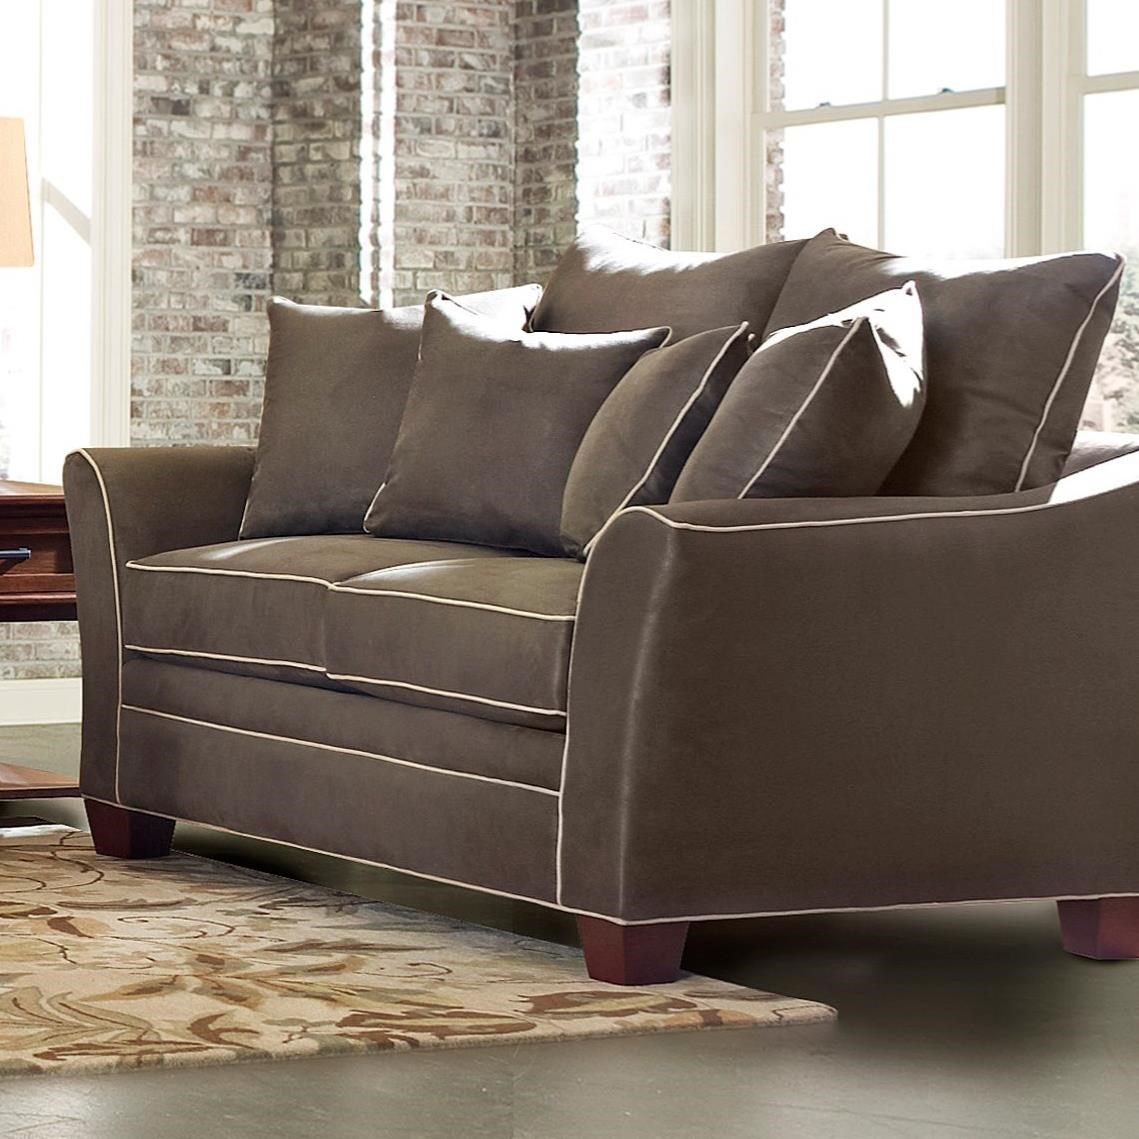 Contemporary Loveseat with Contrasting Welt Cords